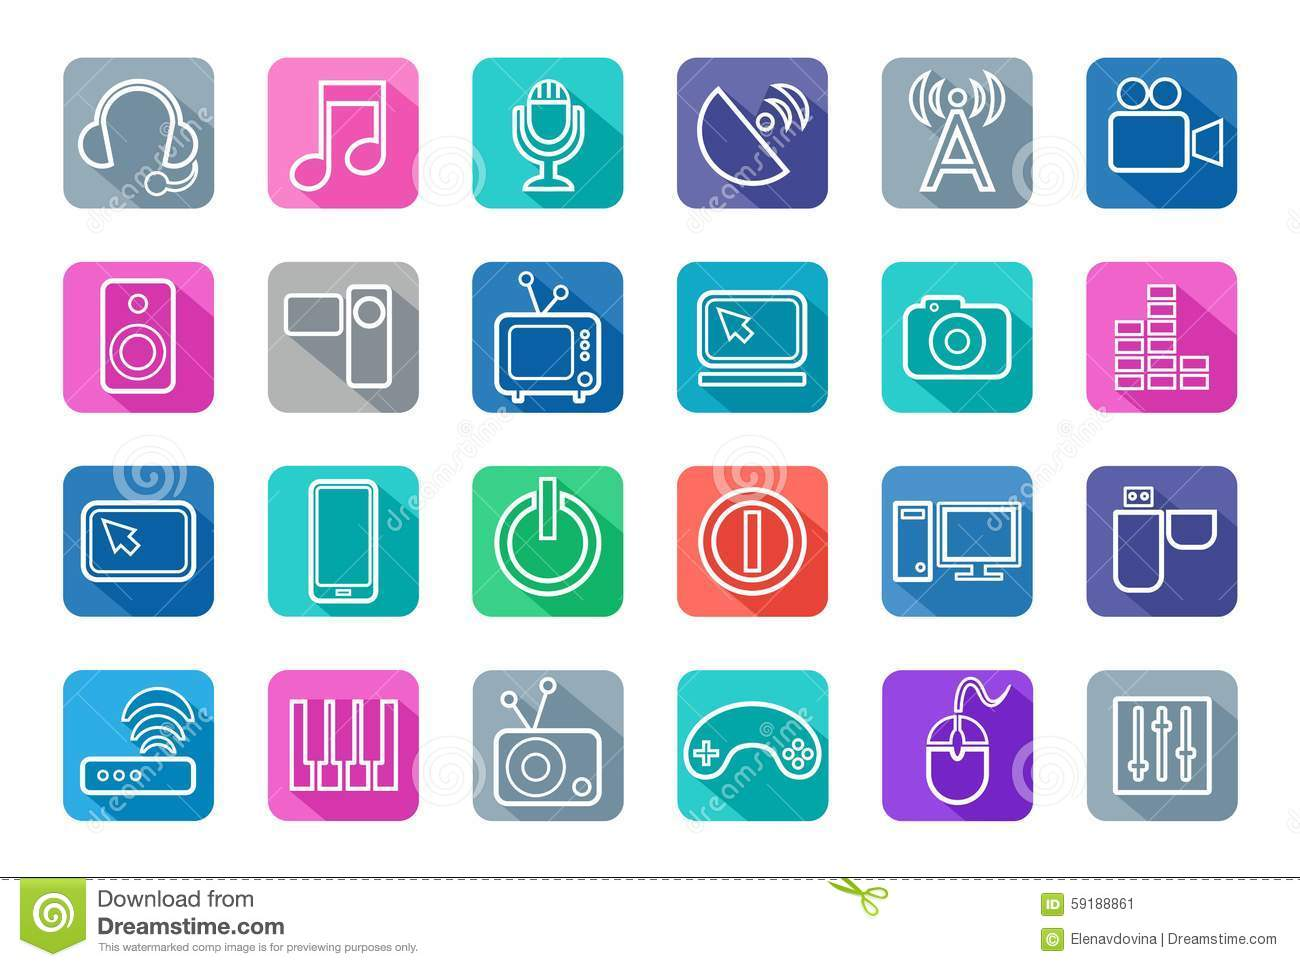 Icons Media, White Outline, Communication, Computer, Colored